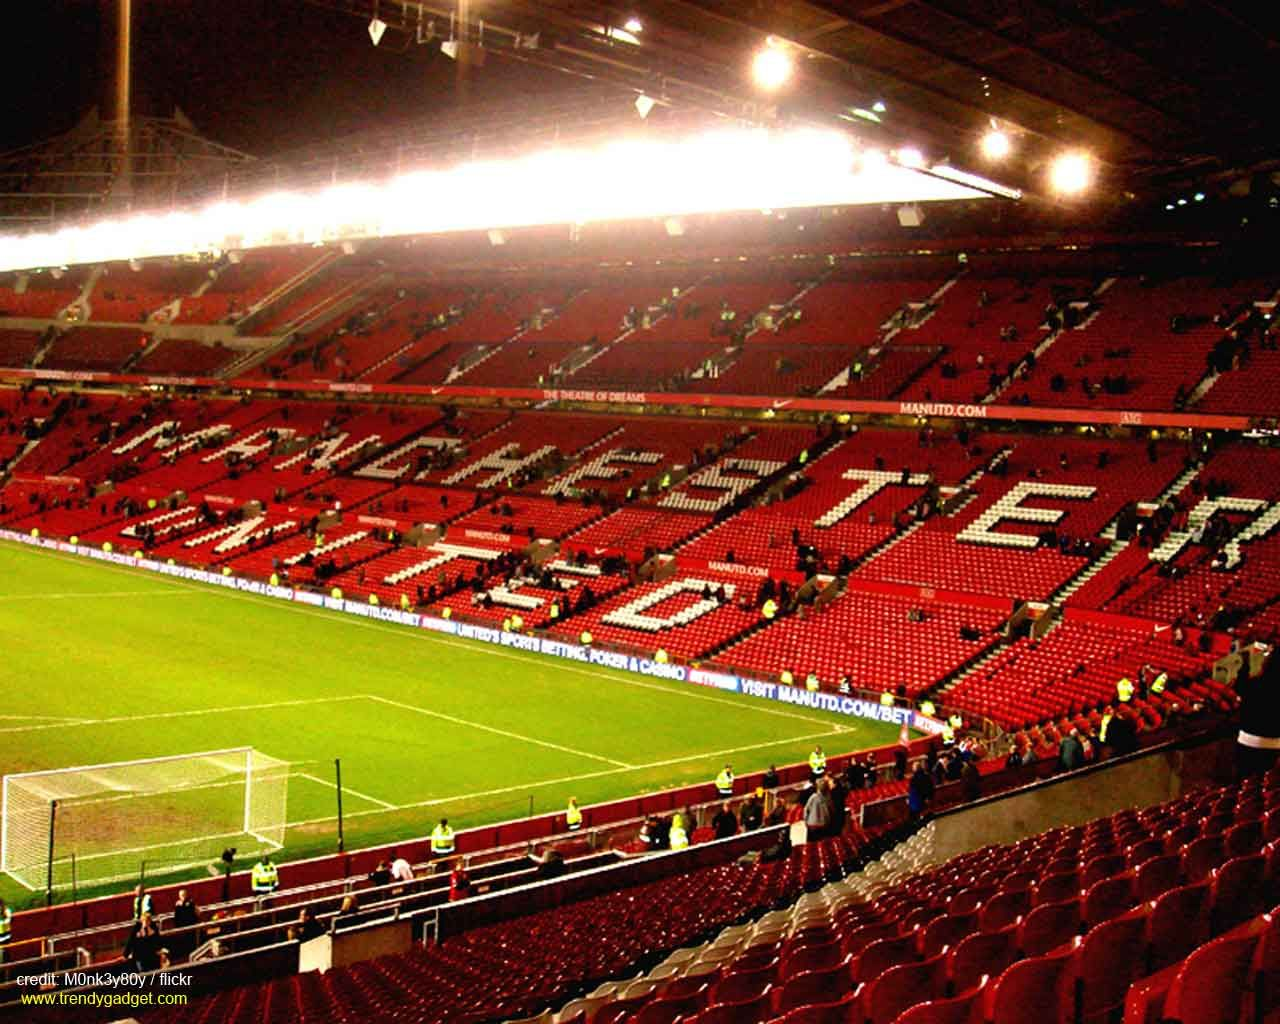 Manchester United Macbook Wallpaper Hd Football In 2020 Old Trafford Manchester United Stadium Manchester United Old Trafford